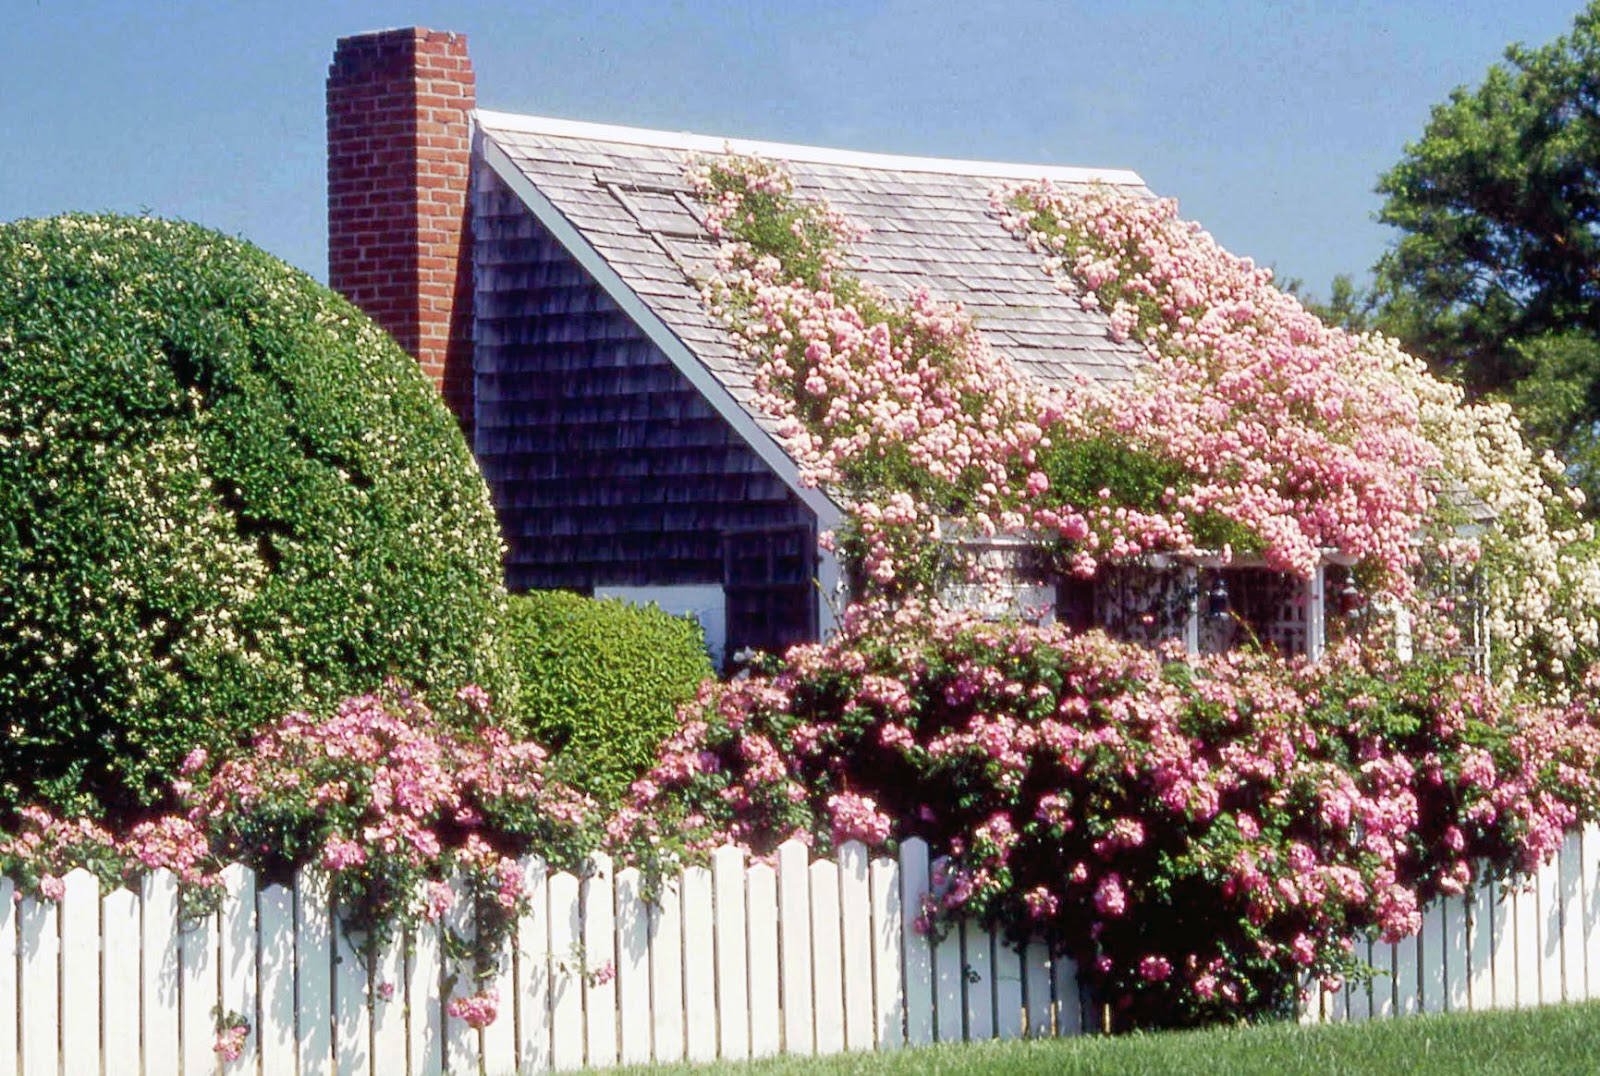 Cape Cod Rose Part - 31: My Fantasy Home On Cape Cod